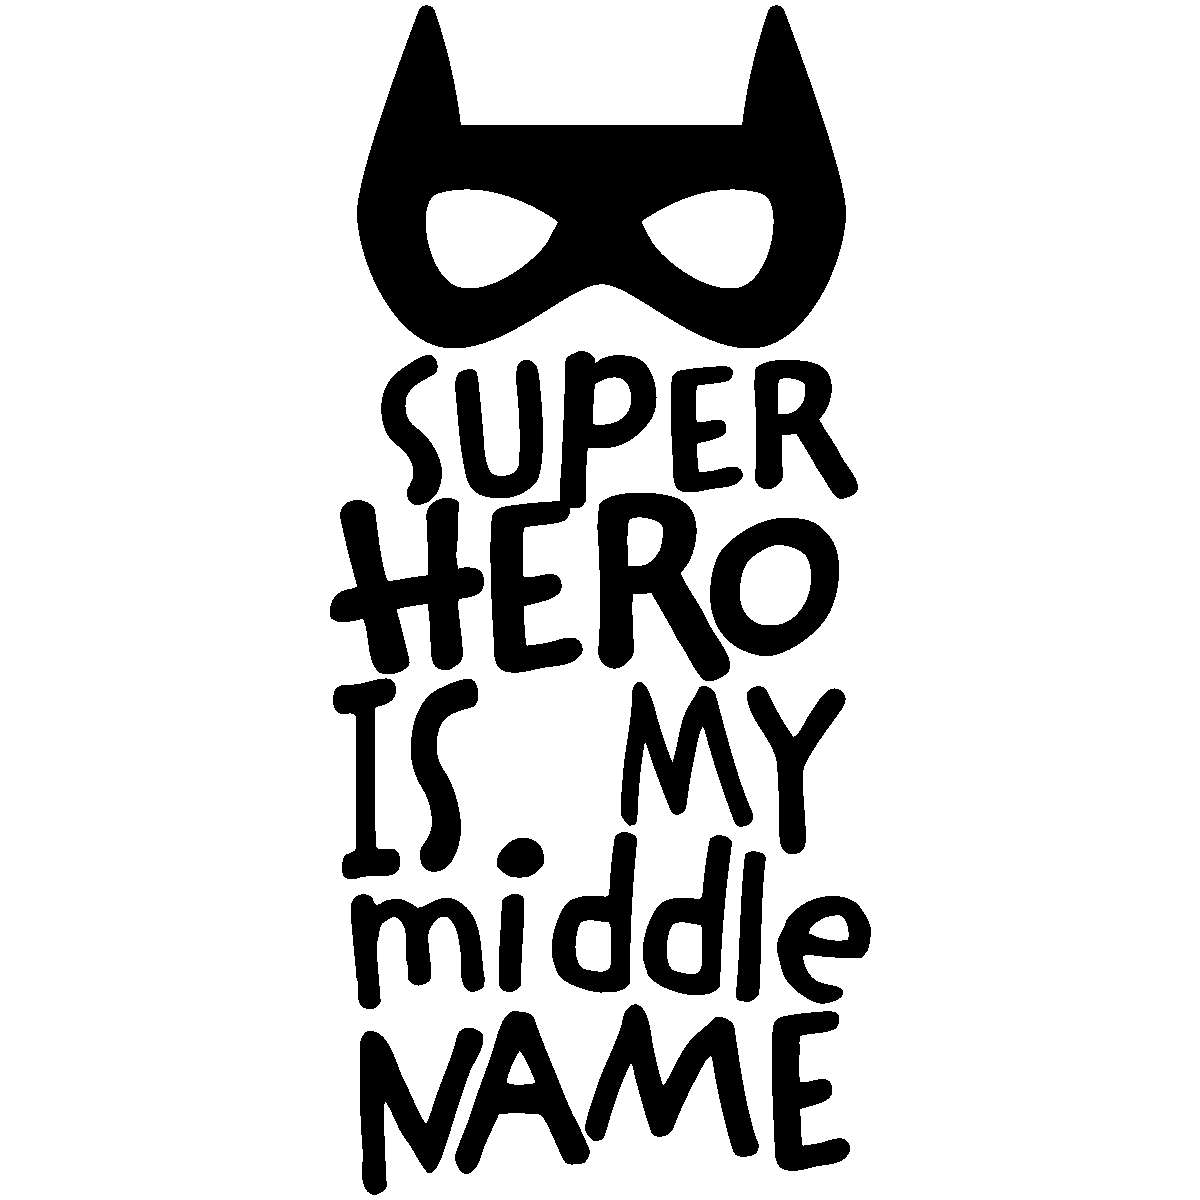 sticker superhero is my name gar ons stickers. Black Bedroom Furniture Sets. Home Design Ideas